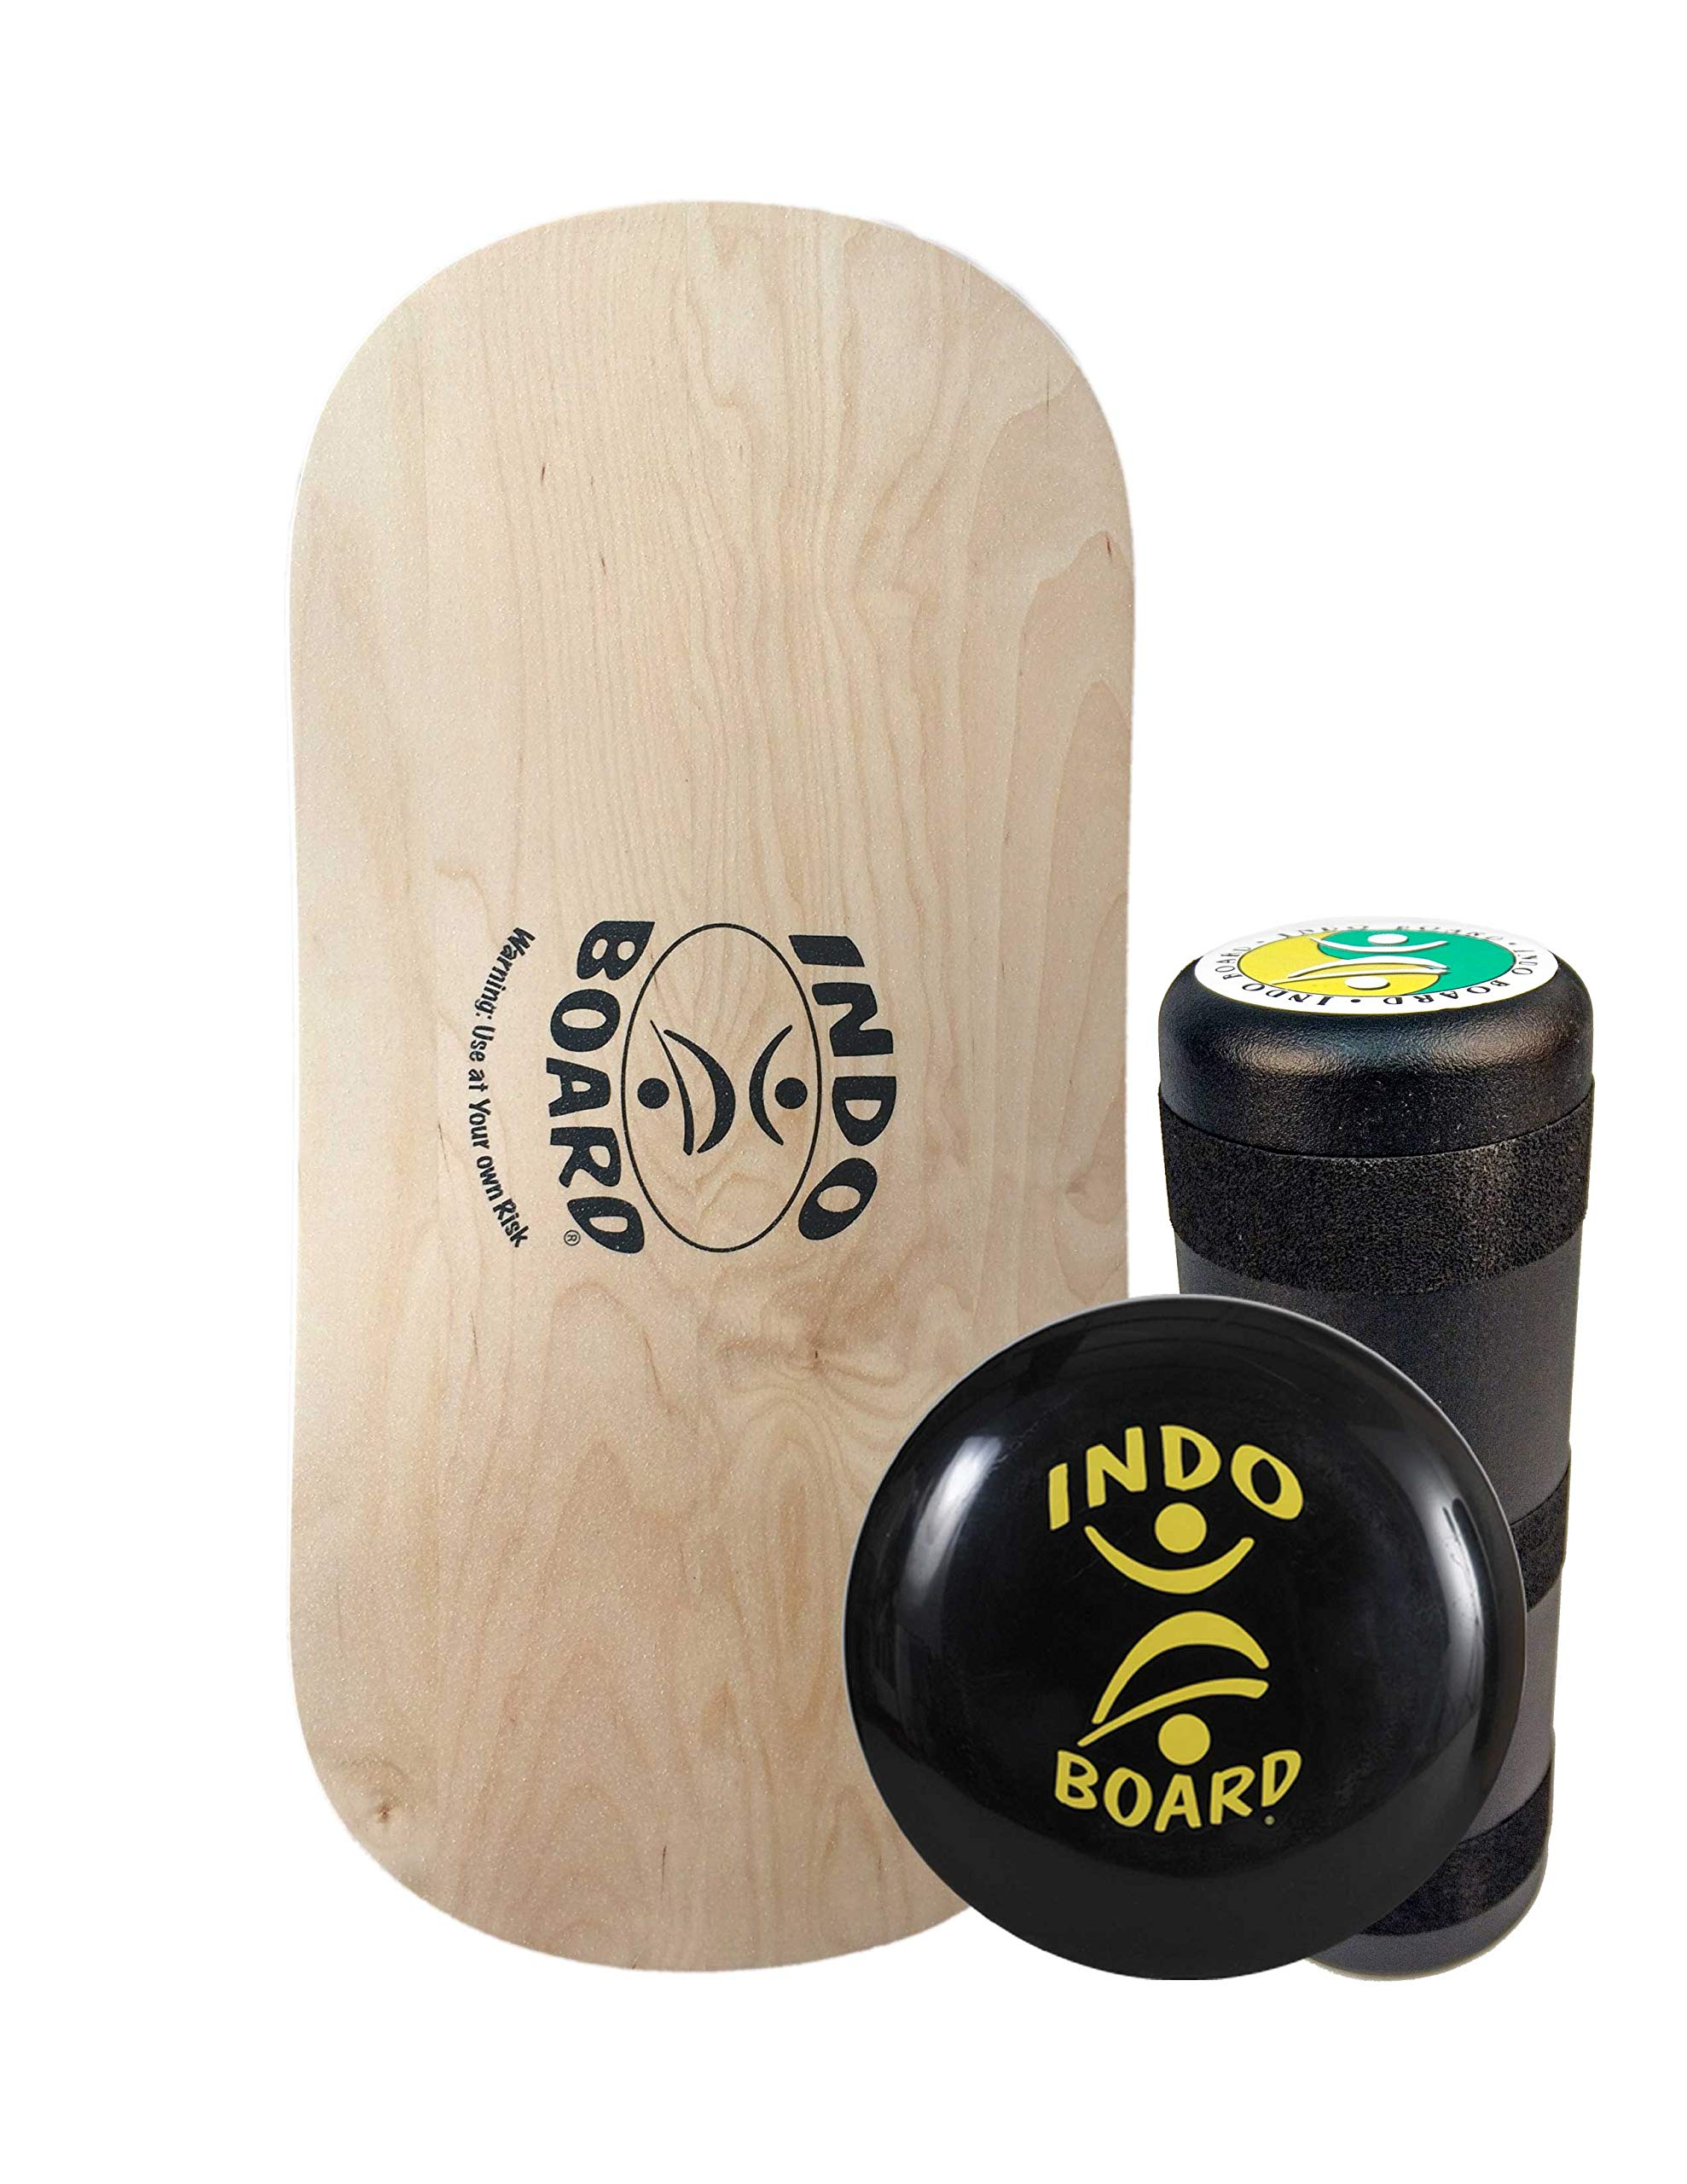 INDO BOARD Rocker Balance Board Package Ages, Improve Balance, Comes with 33'' X 15'' Non-Slip Deck 6.5'' Roller and 14'' Cushion - Natural Wood